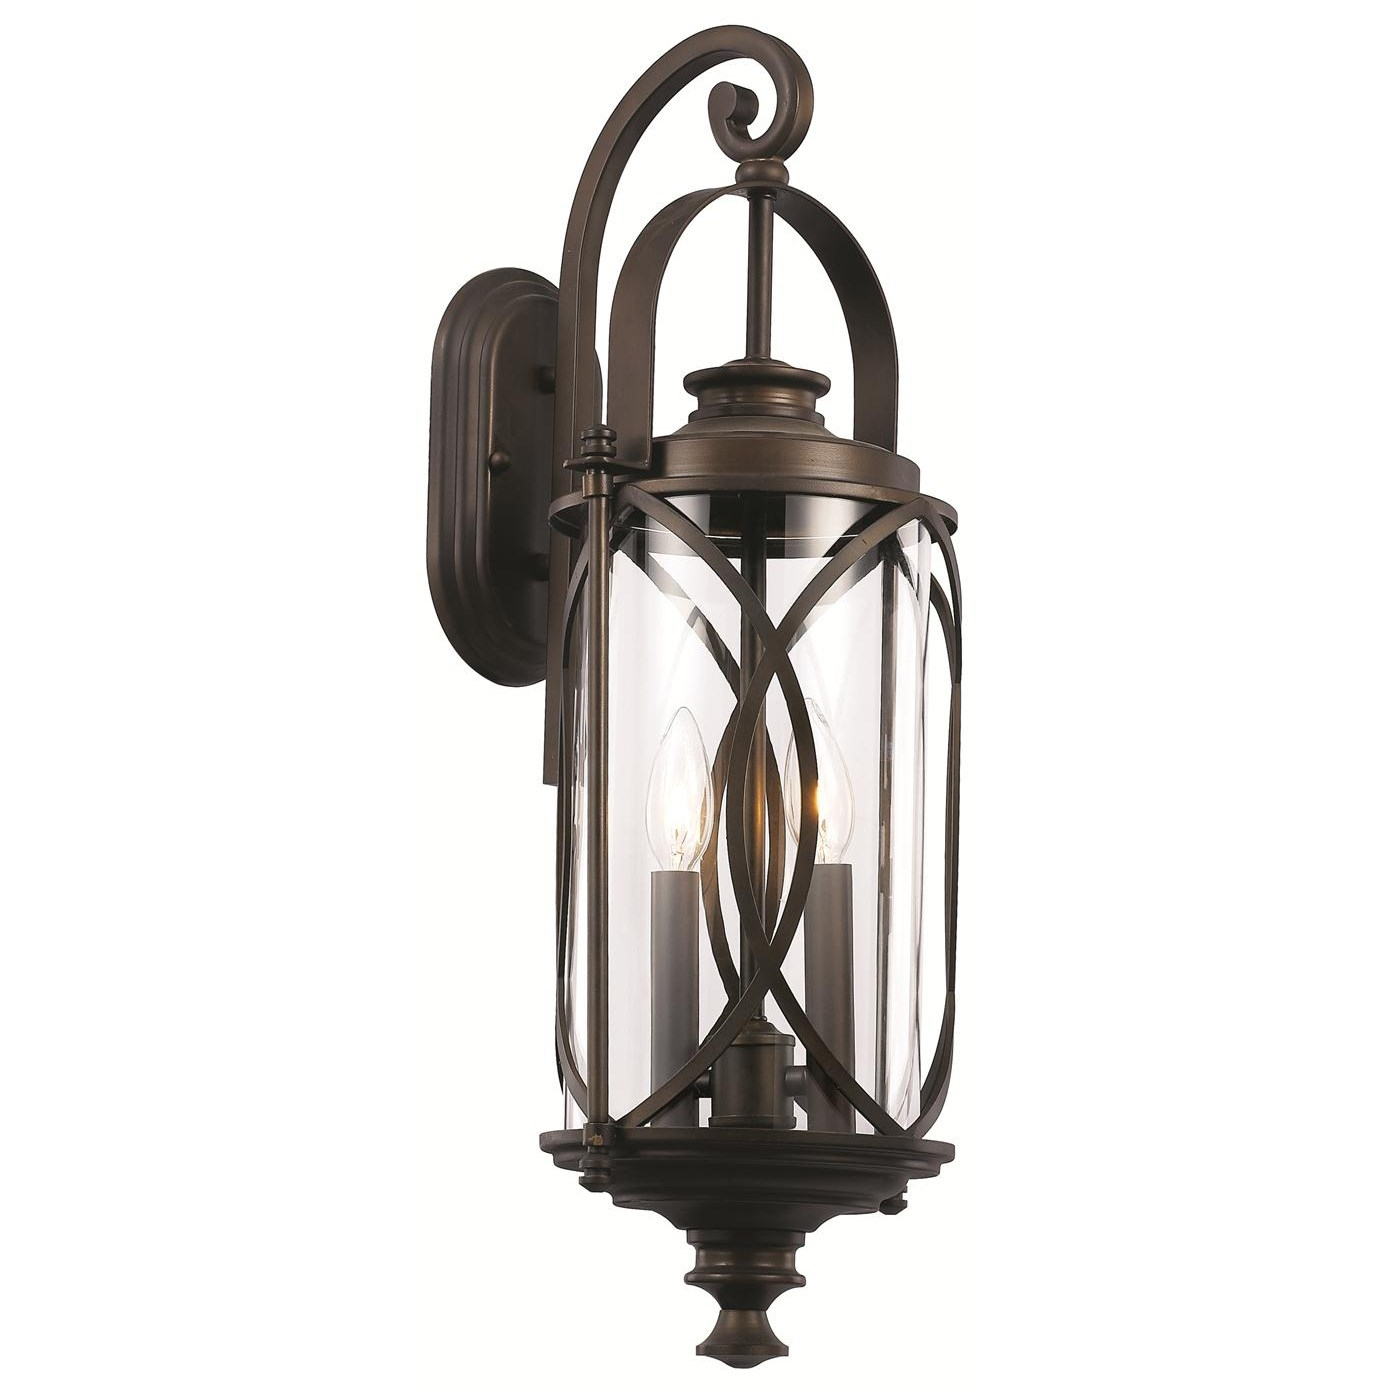 Inspiration about Trans Globe 40411 Rob Crossover 2 Light Medium Interlocked Wall Pertaining To Outdoor Wall Lantern By Transglobe Lighting (#7 of 15)